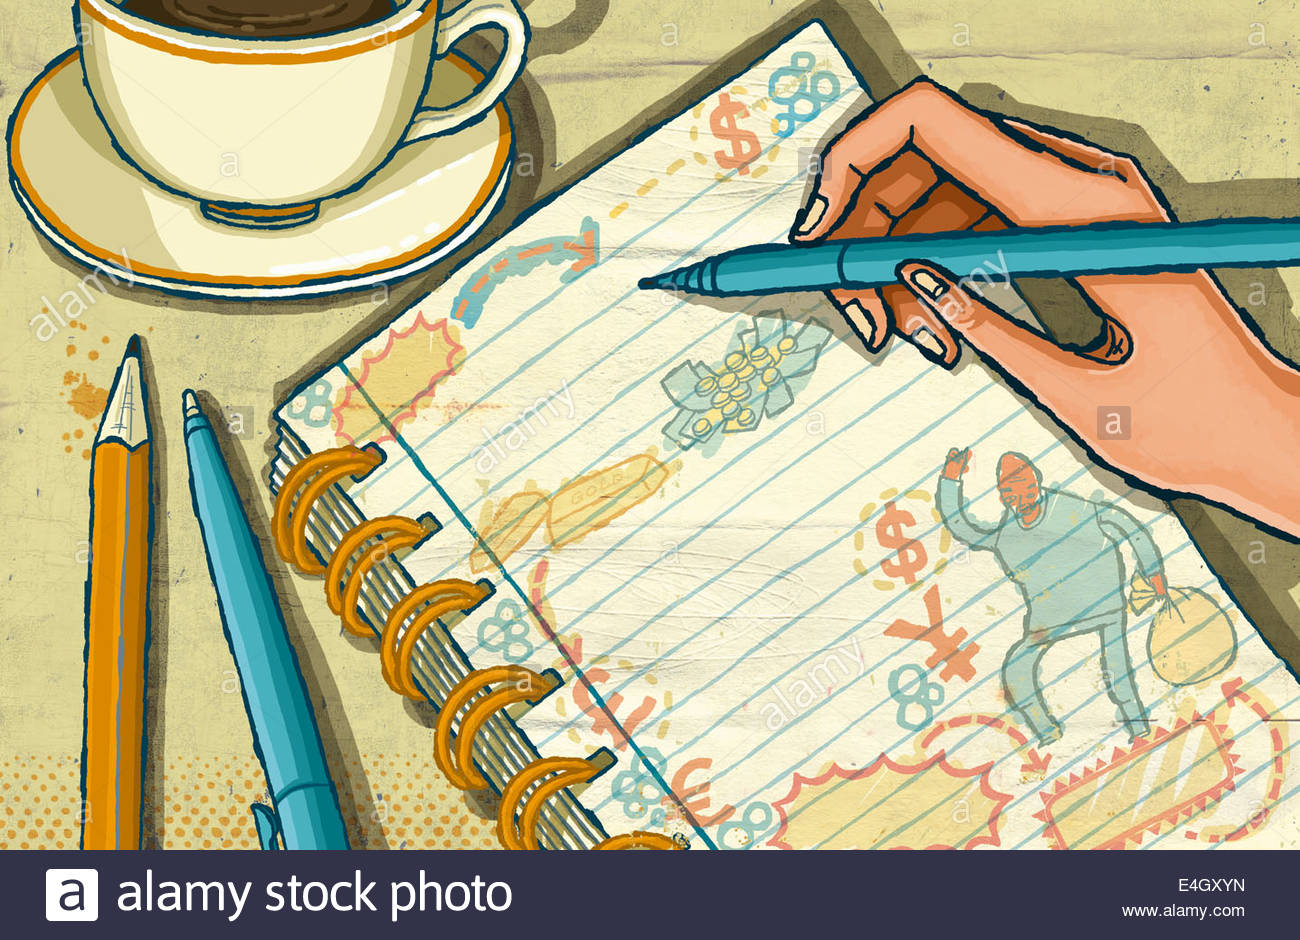 Hand doodling drawing money and currency symbols in notebook - Stock Image